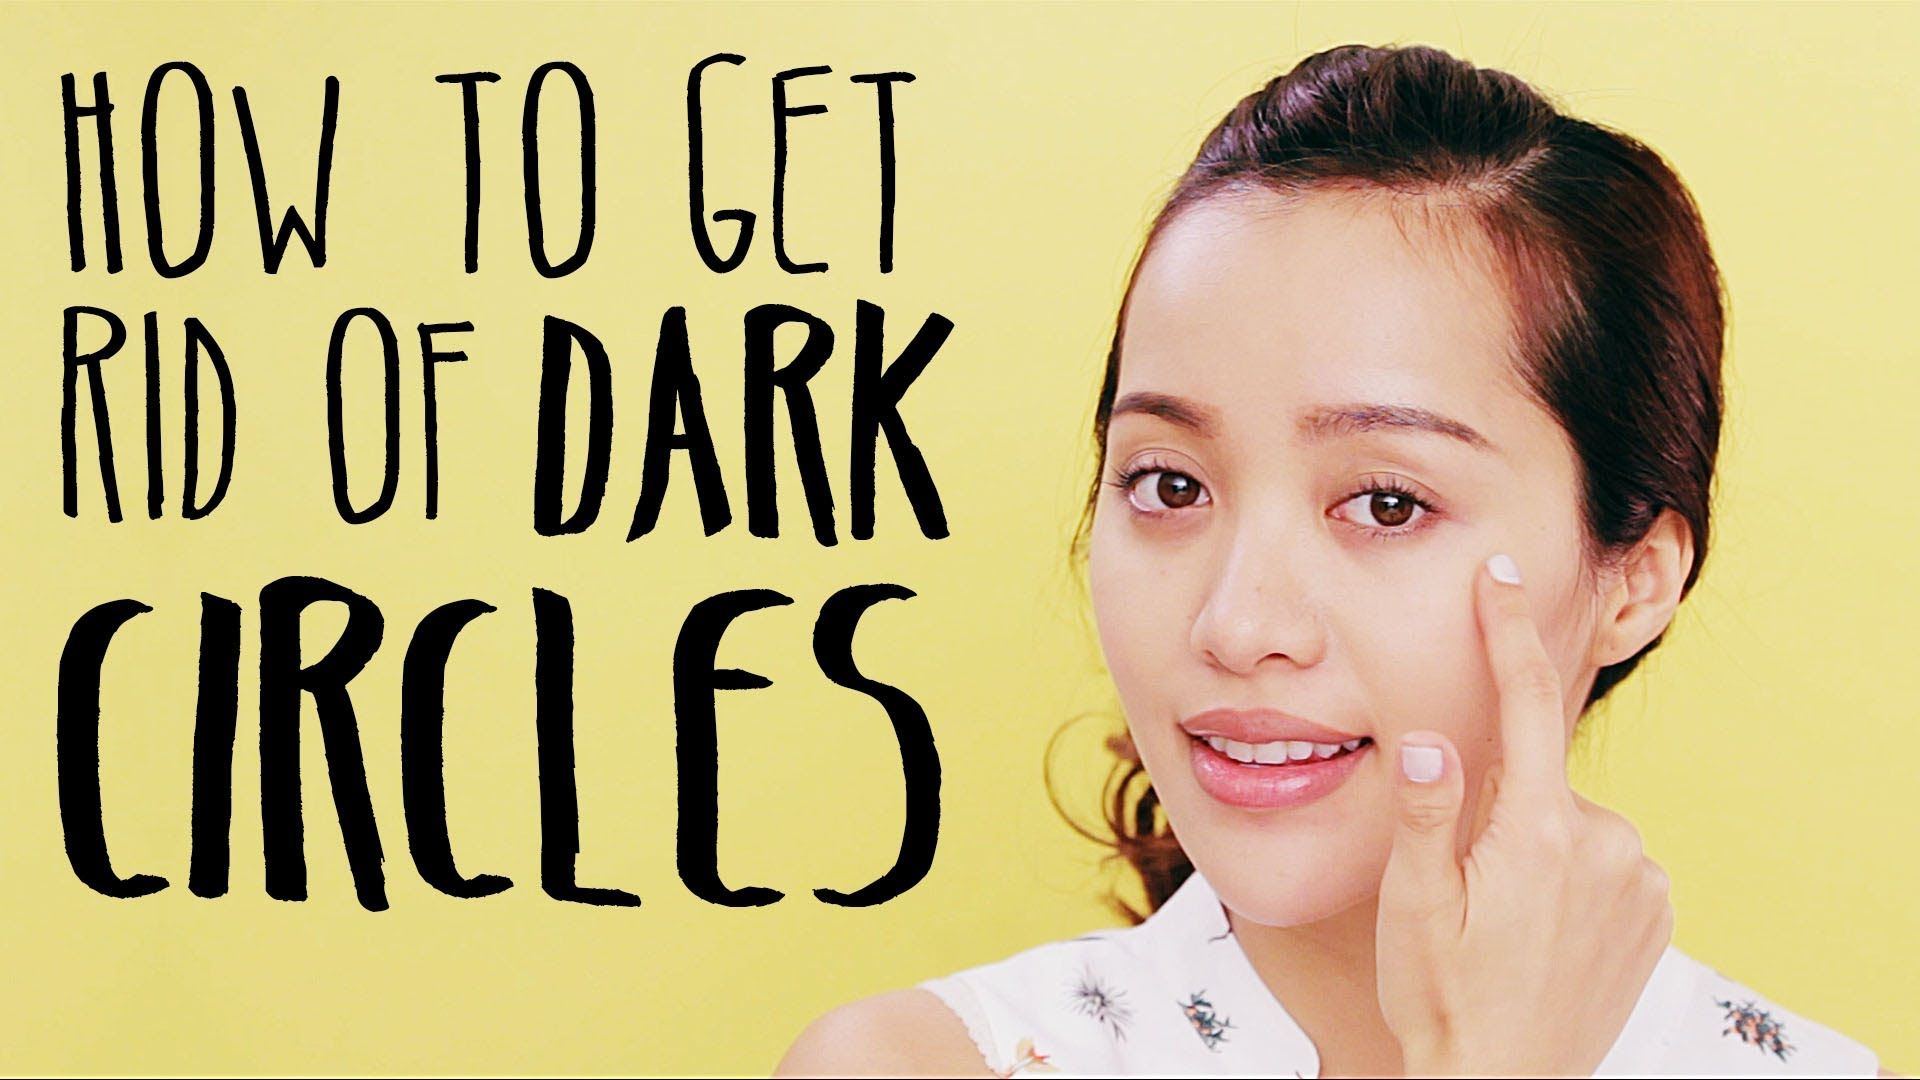 926c0125a42 How to Get Rid of Dark Circles - Licorice extract